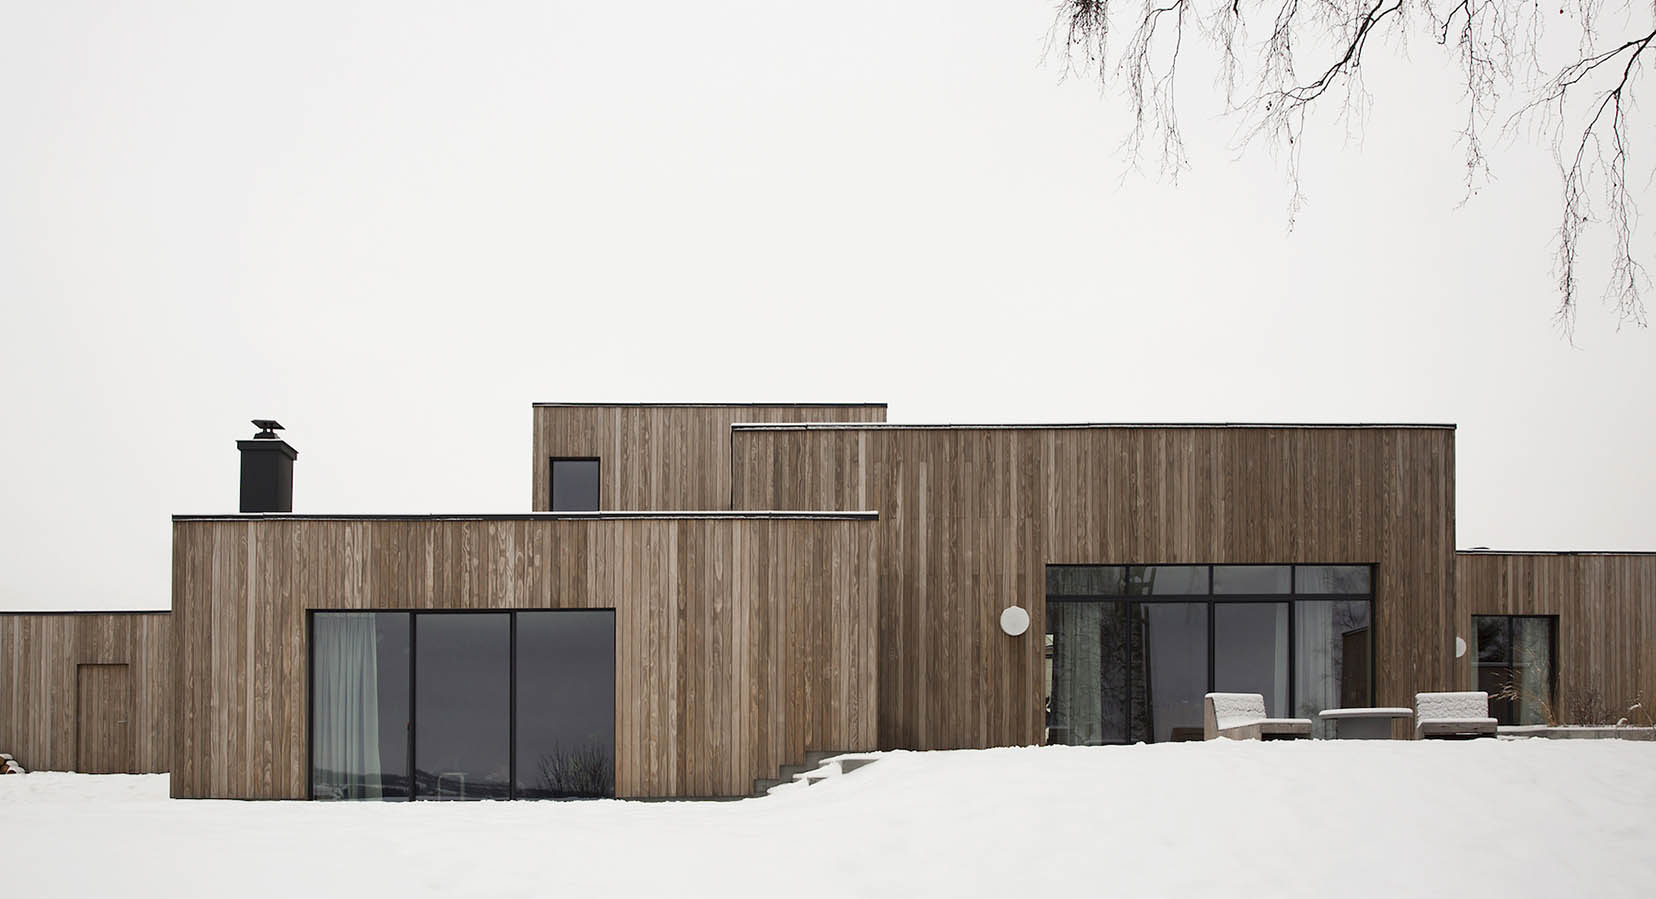 Norm Architects Design The Gjøvik House To Be The \'Epitome Of Hygge ...